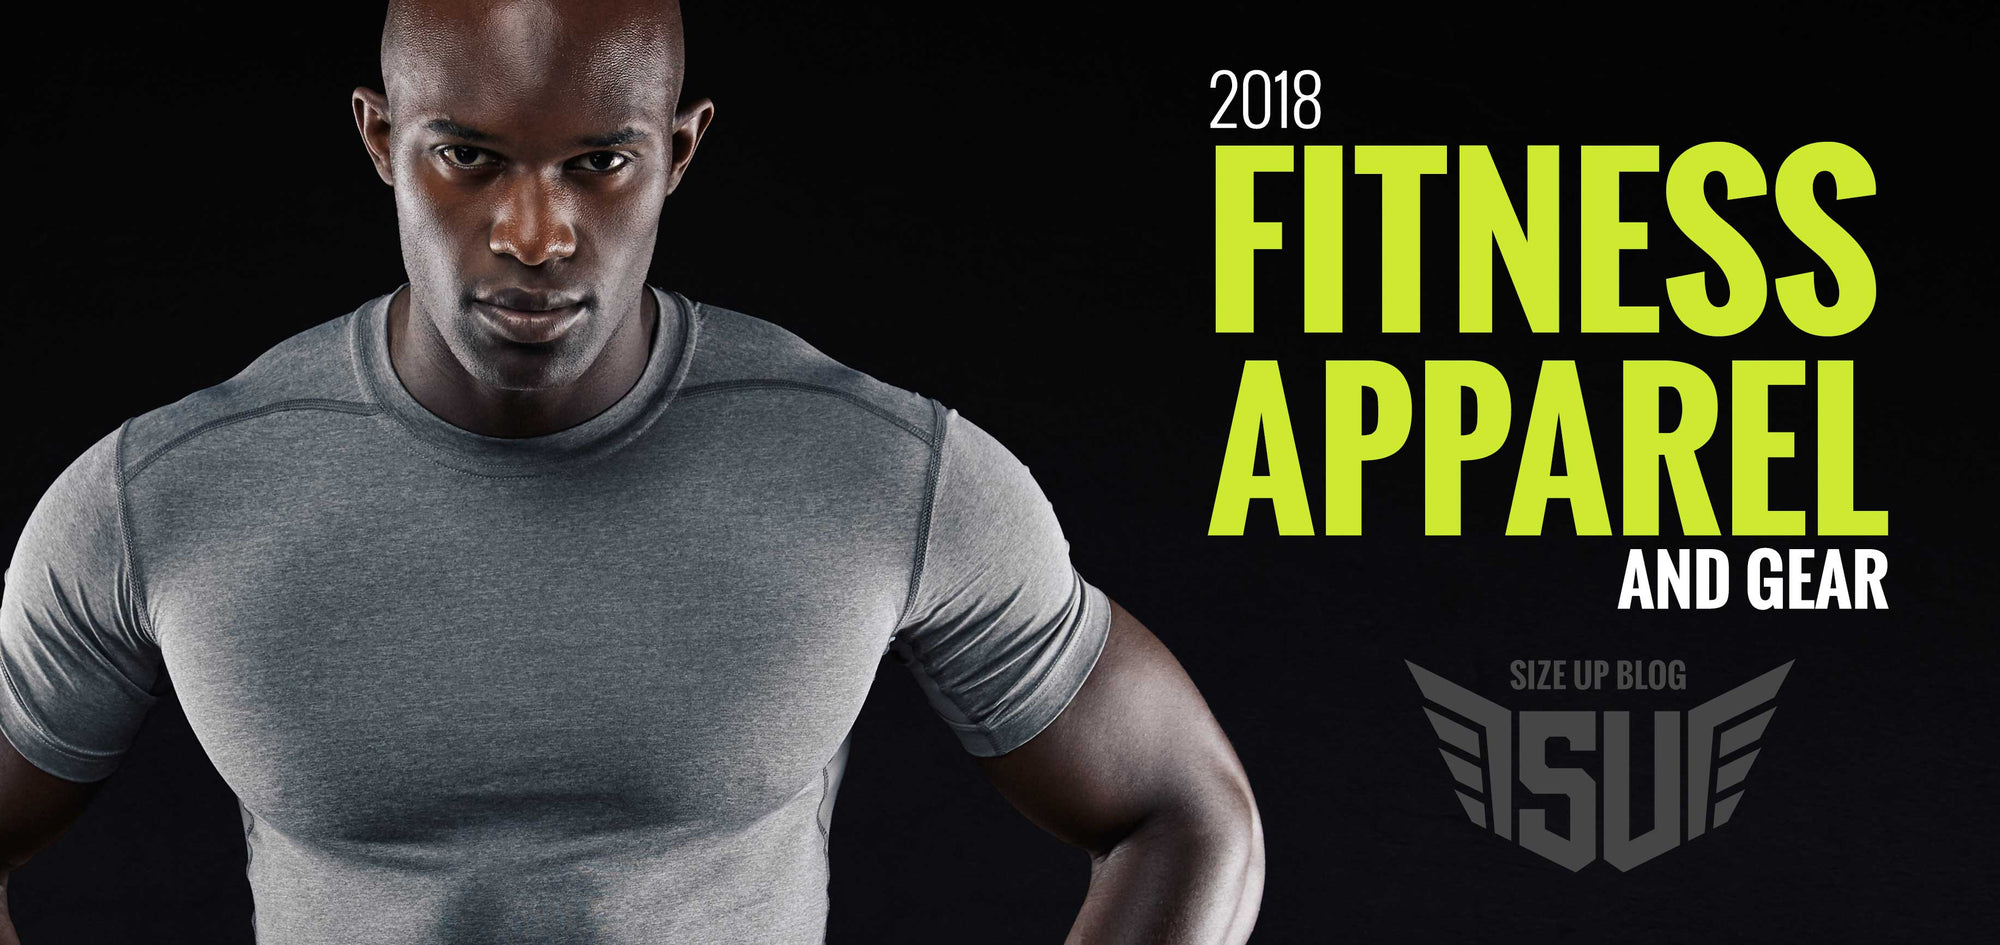 2018 Fitness Apparel and Gear